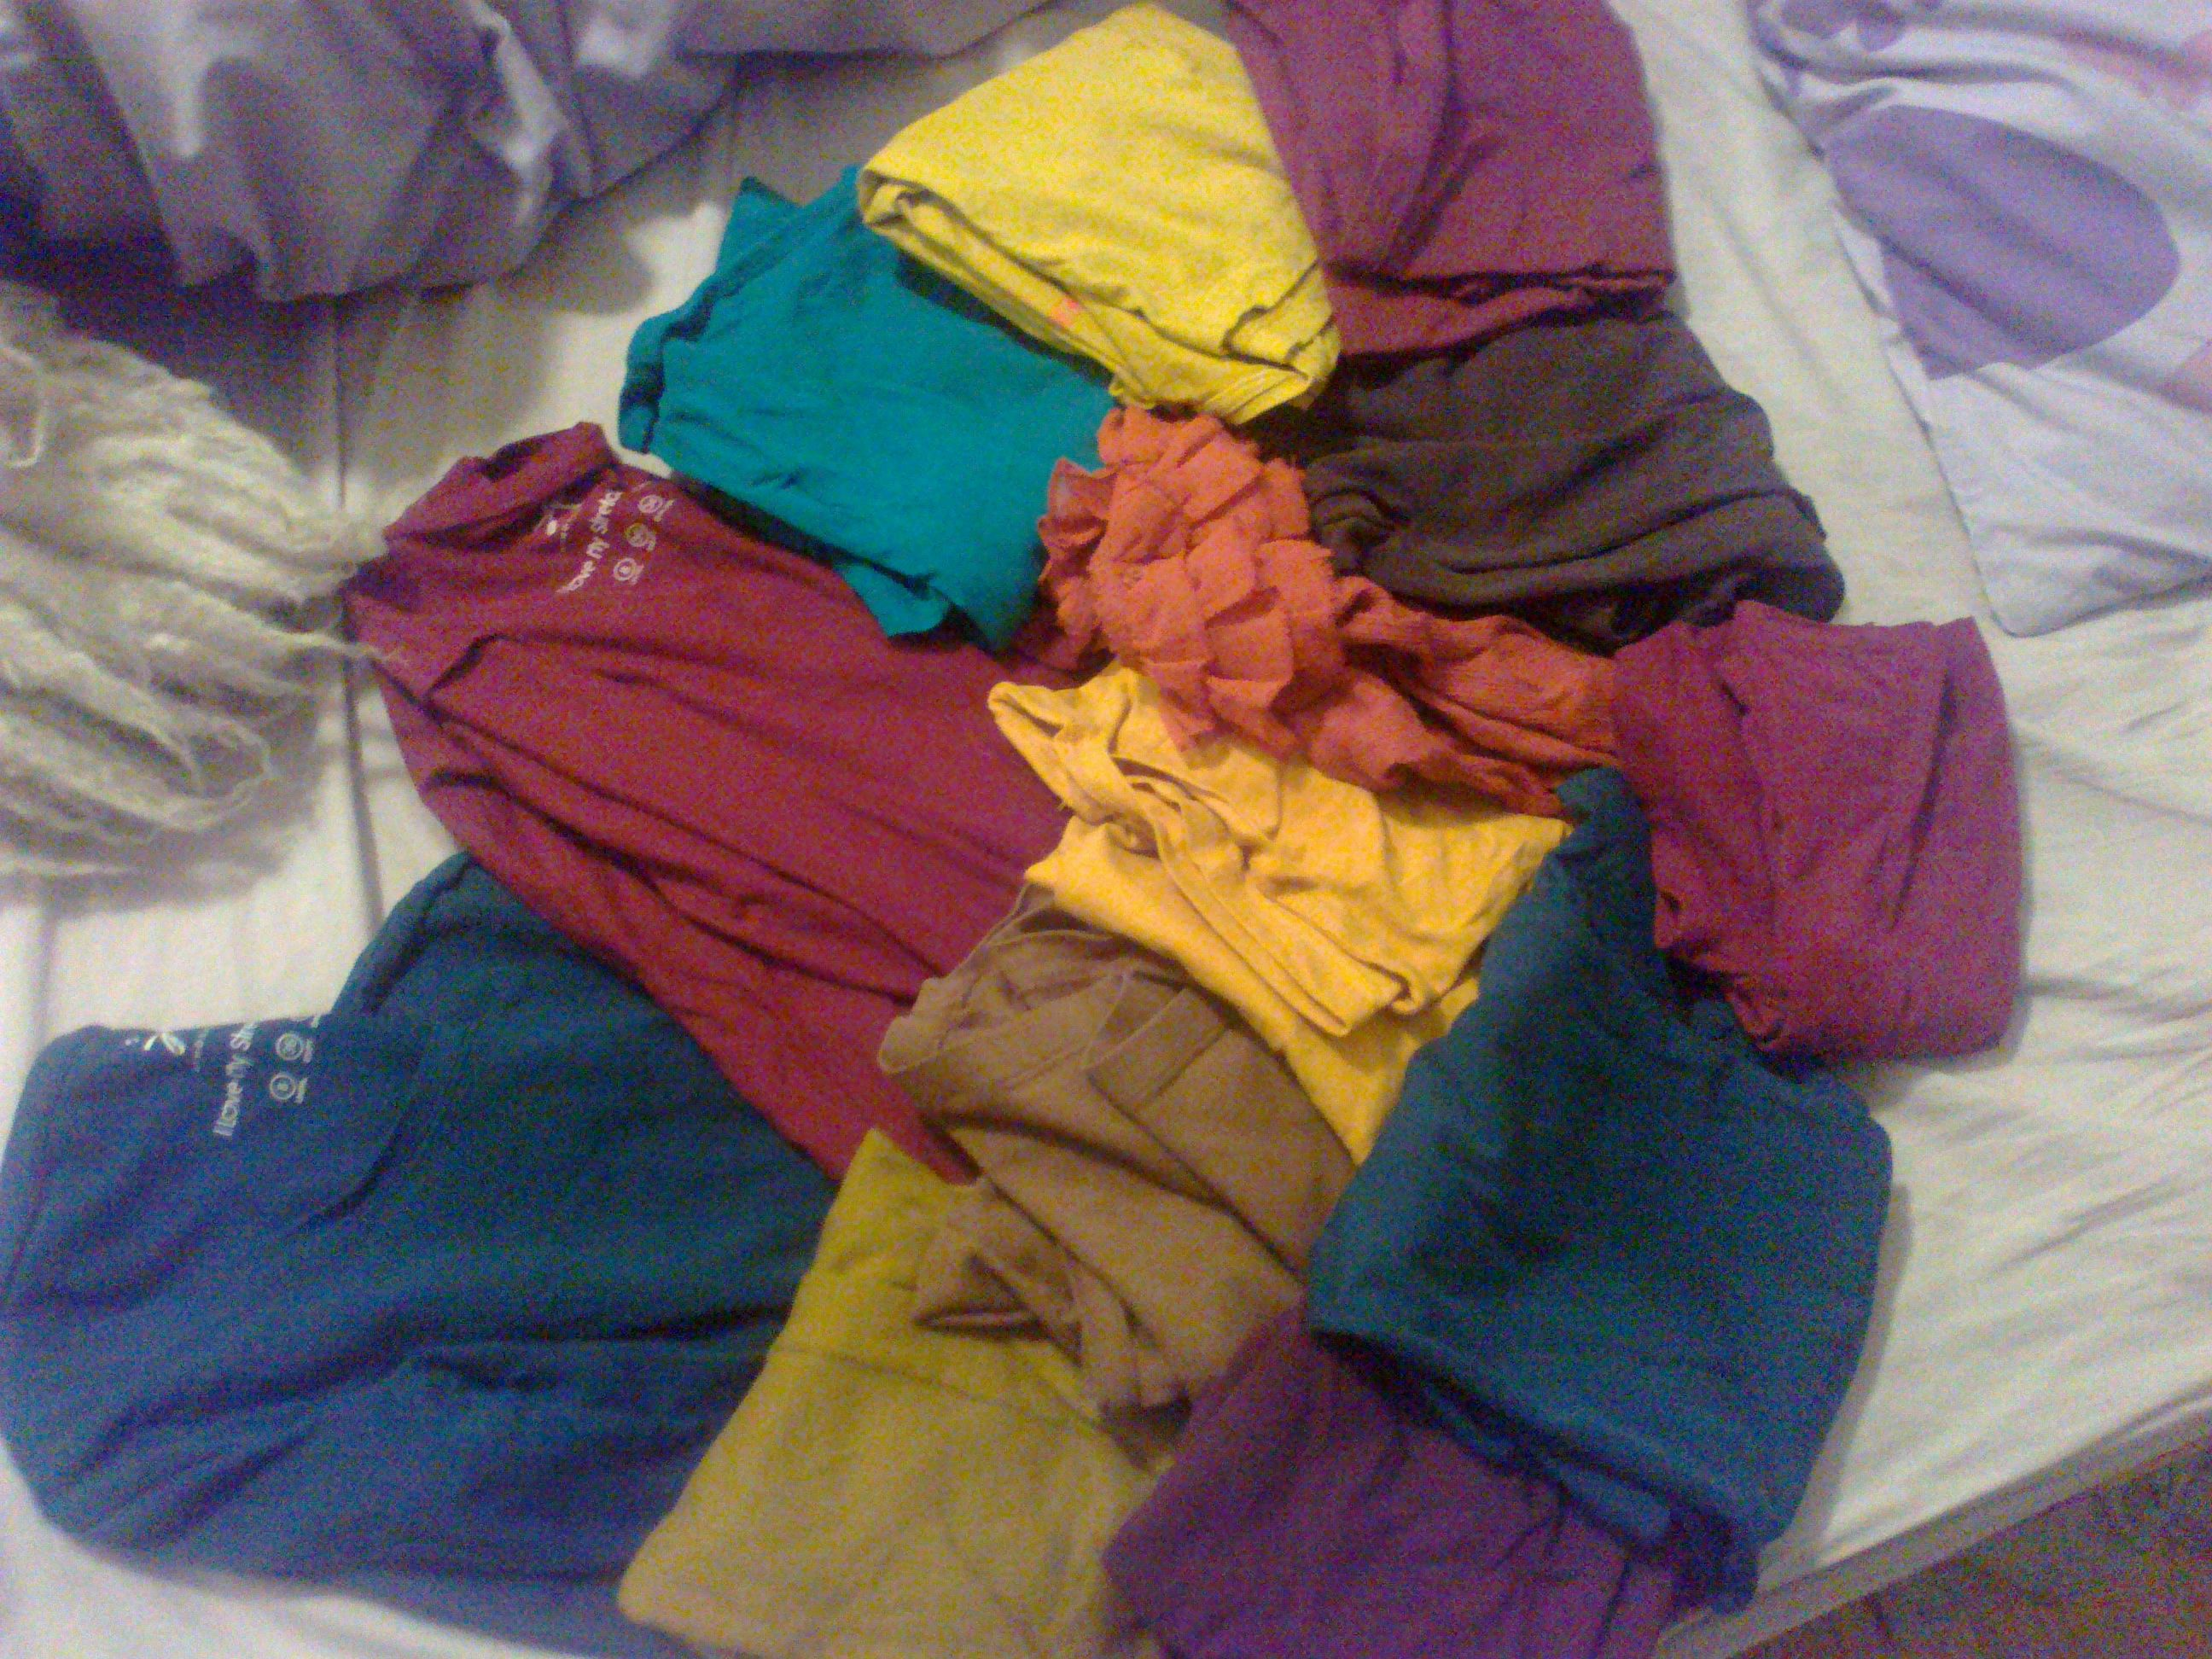 Just A Selection Of The Colourful Tops I Have Acquired Since Beginning My Style Journey With Dressing Yo Types Of Fashion Styles Mustard Top Outfit Warm Autumn